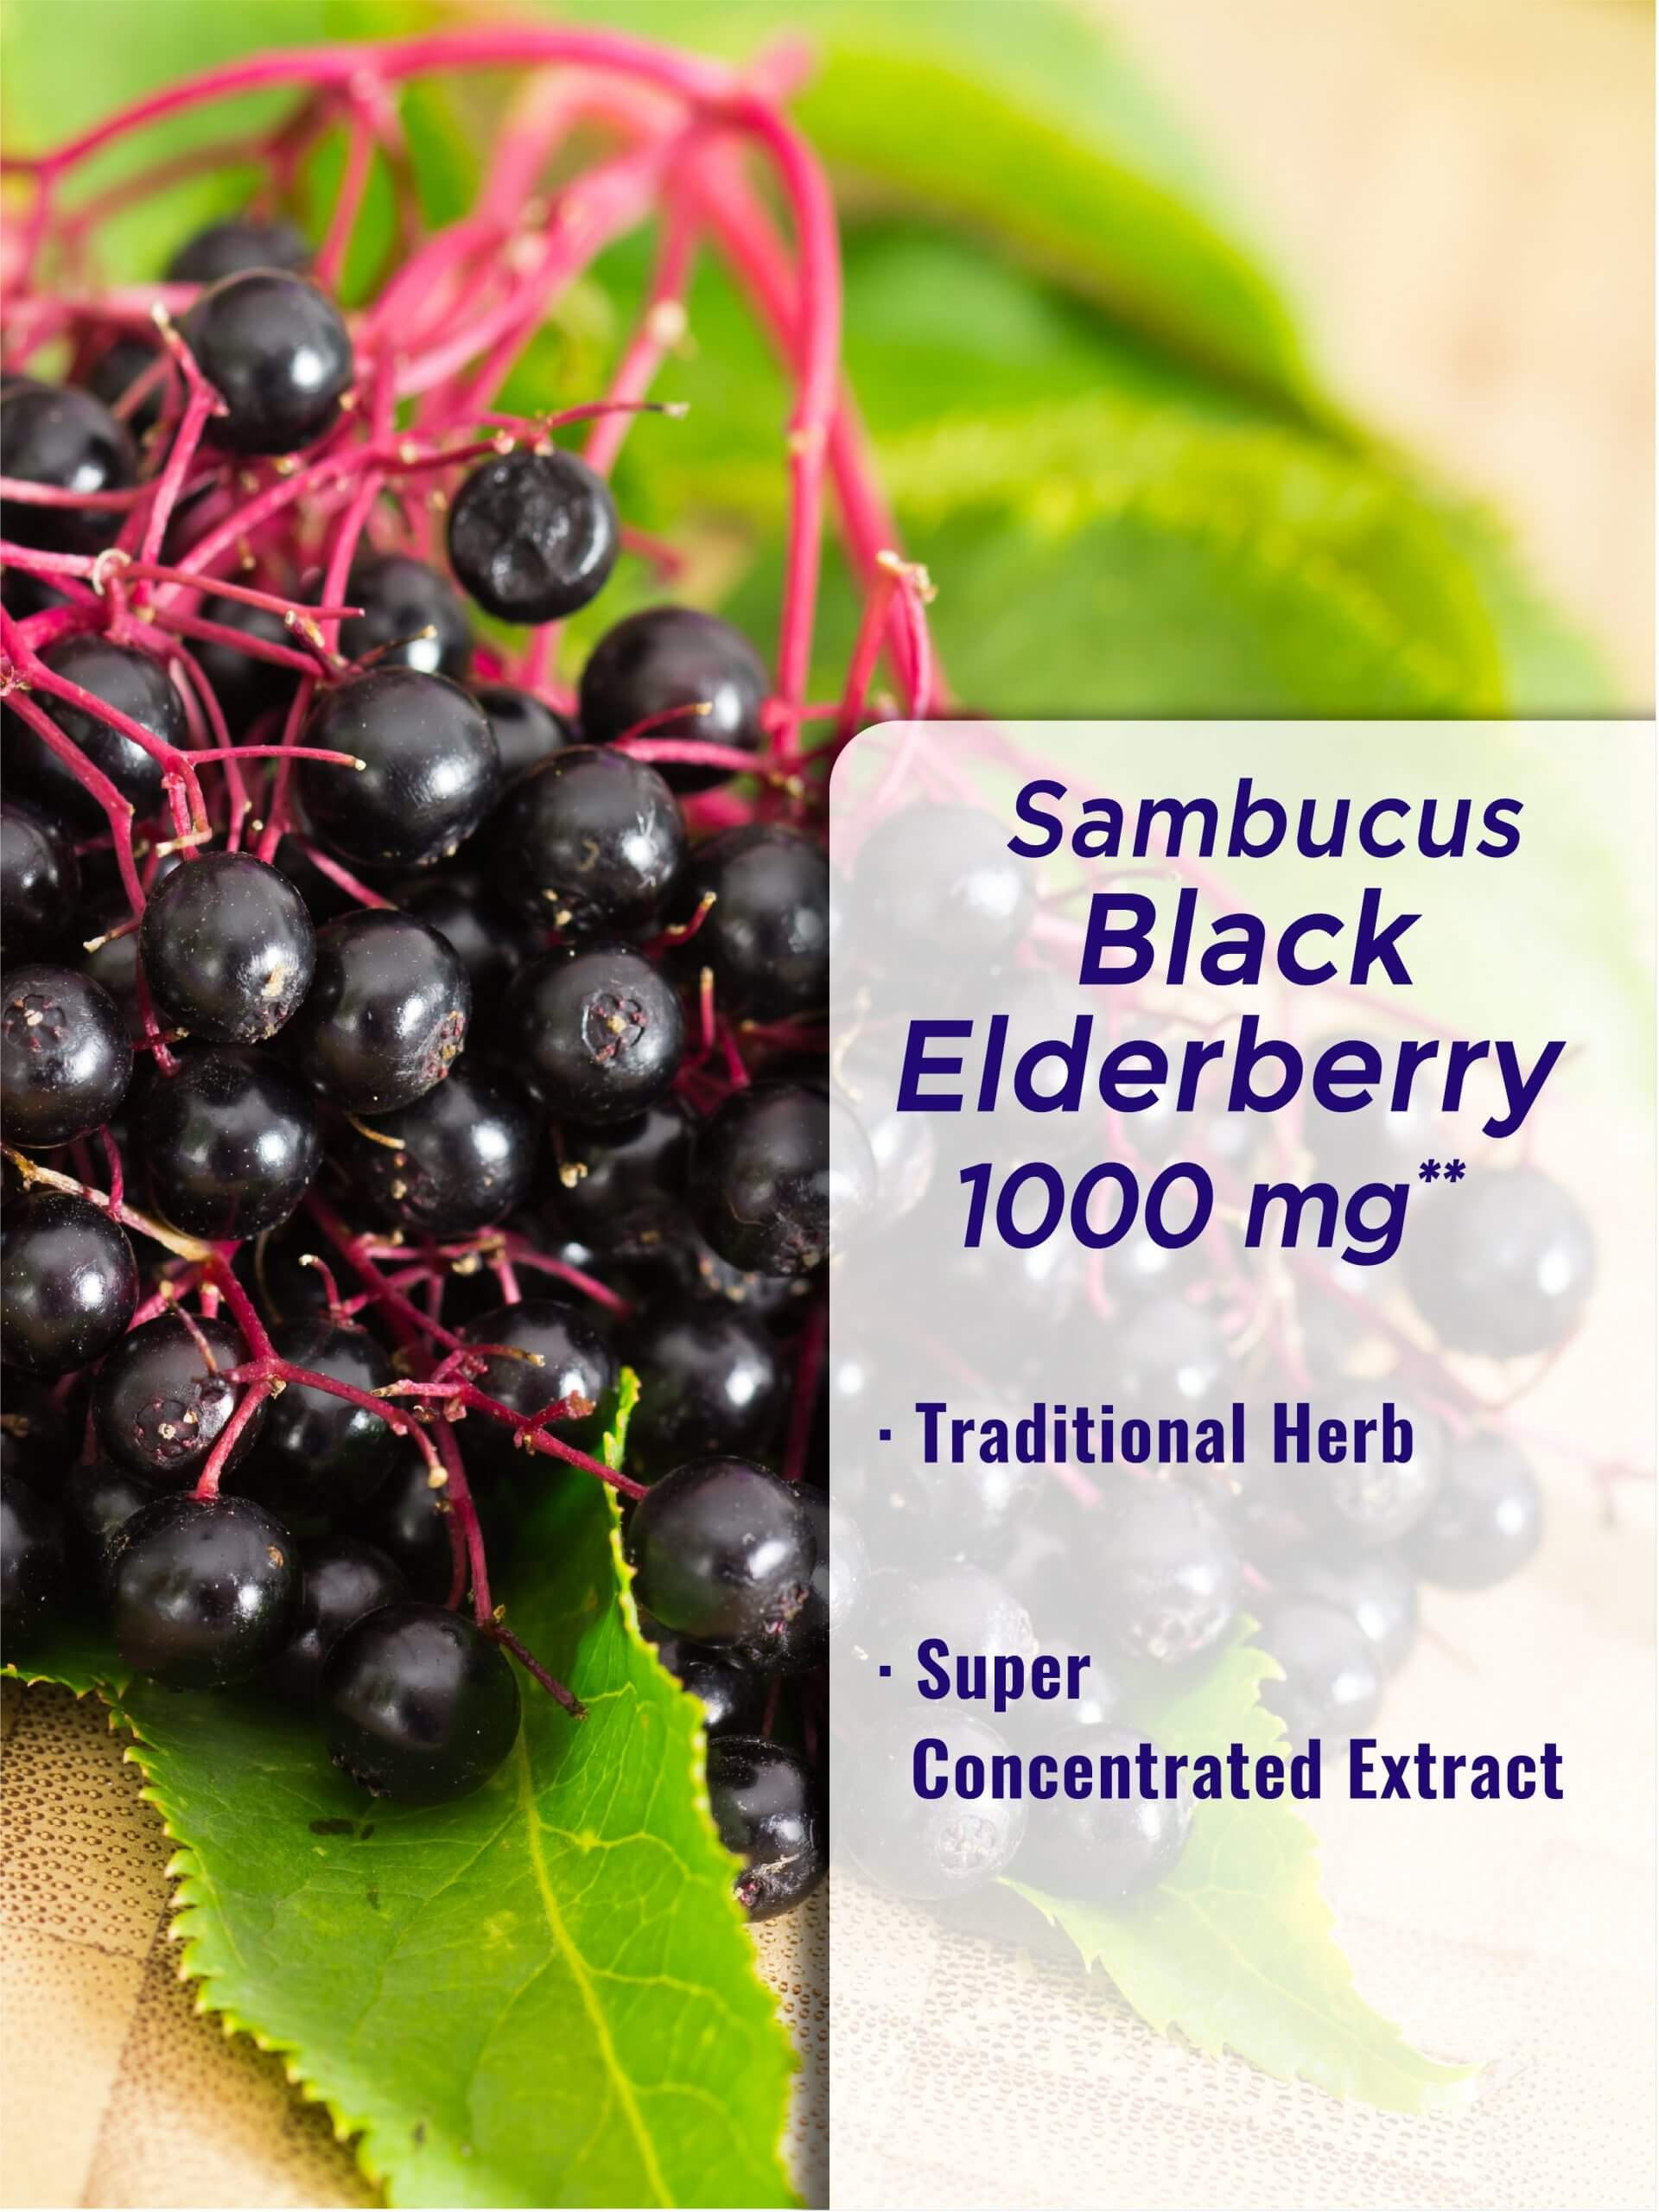 Sambucus Black Elderberry 1000 mg**